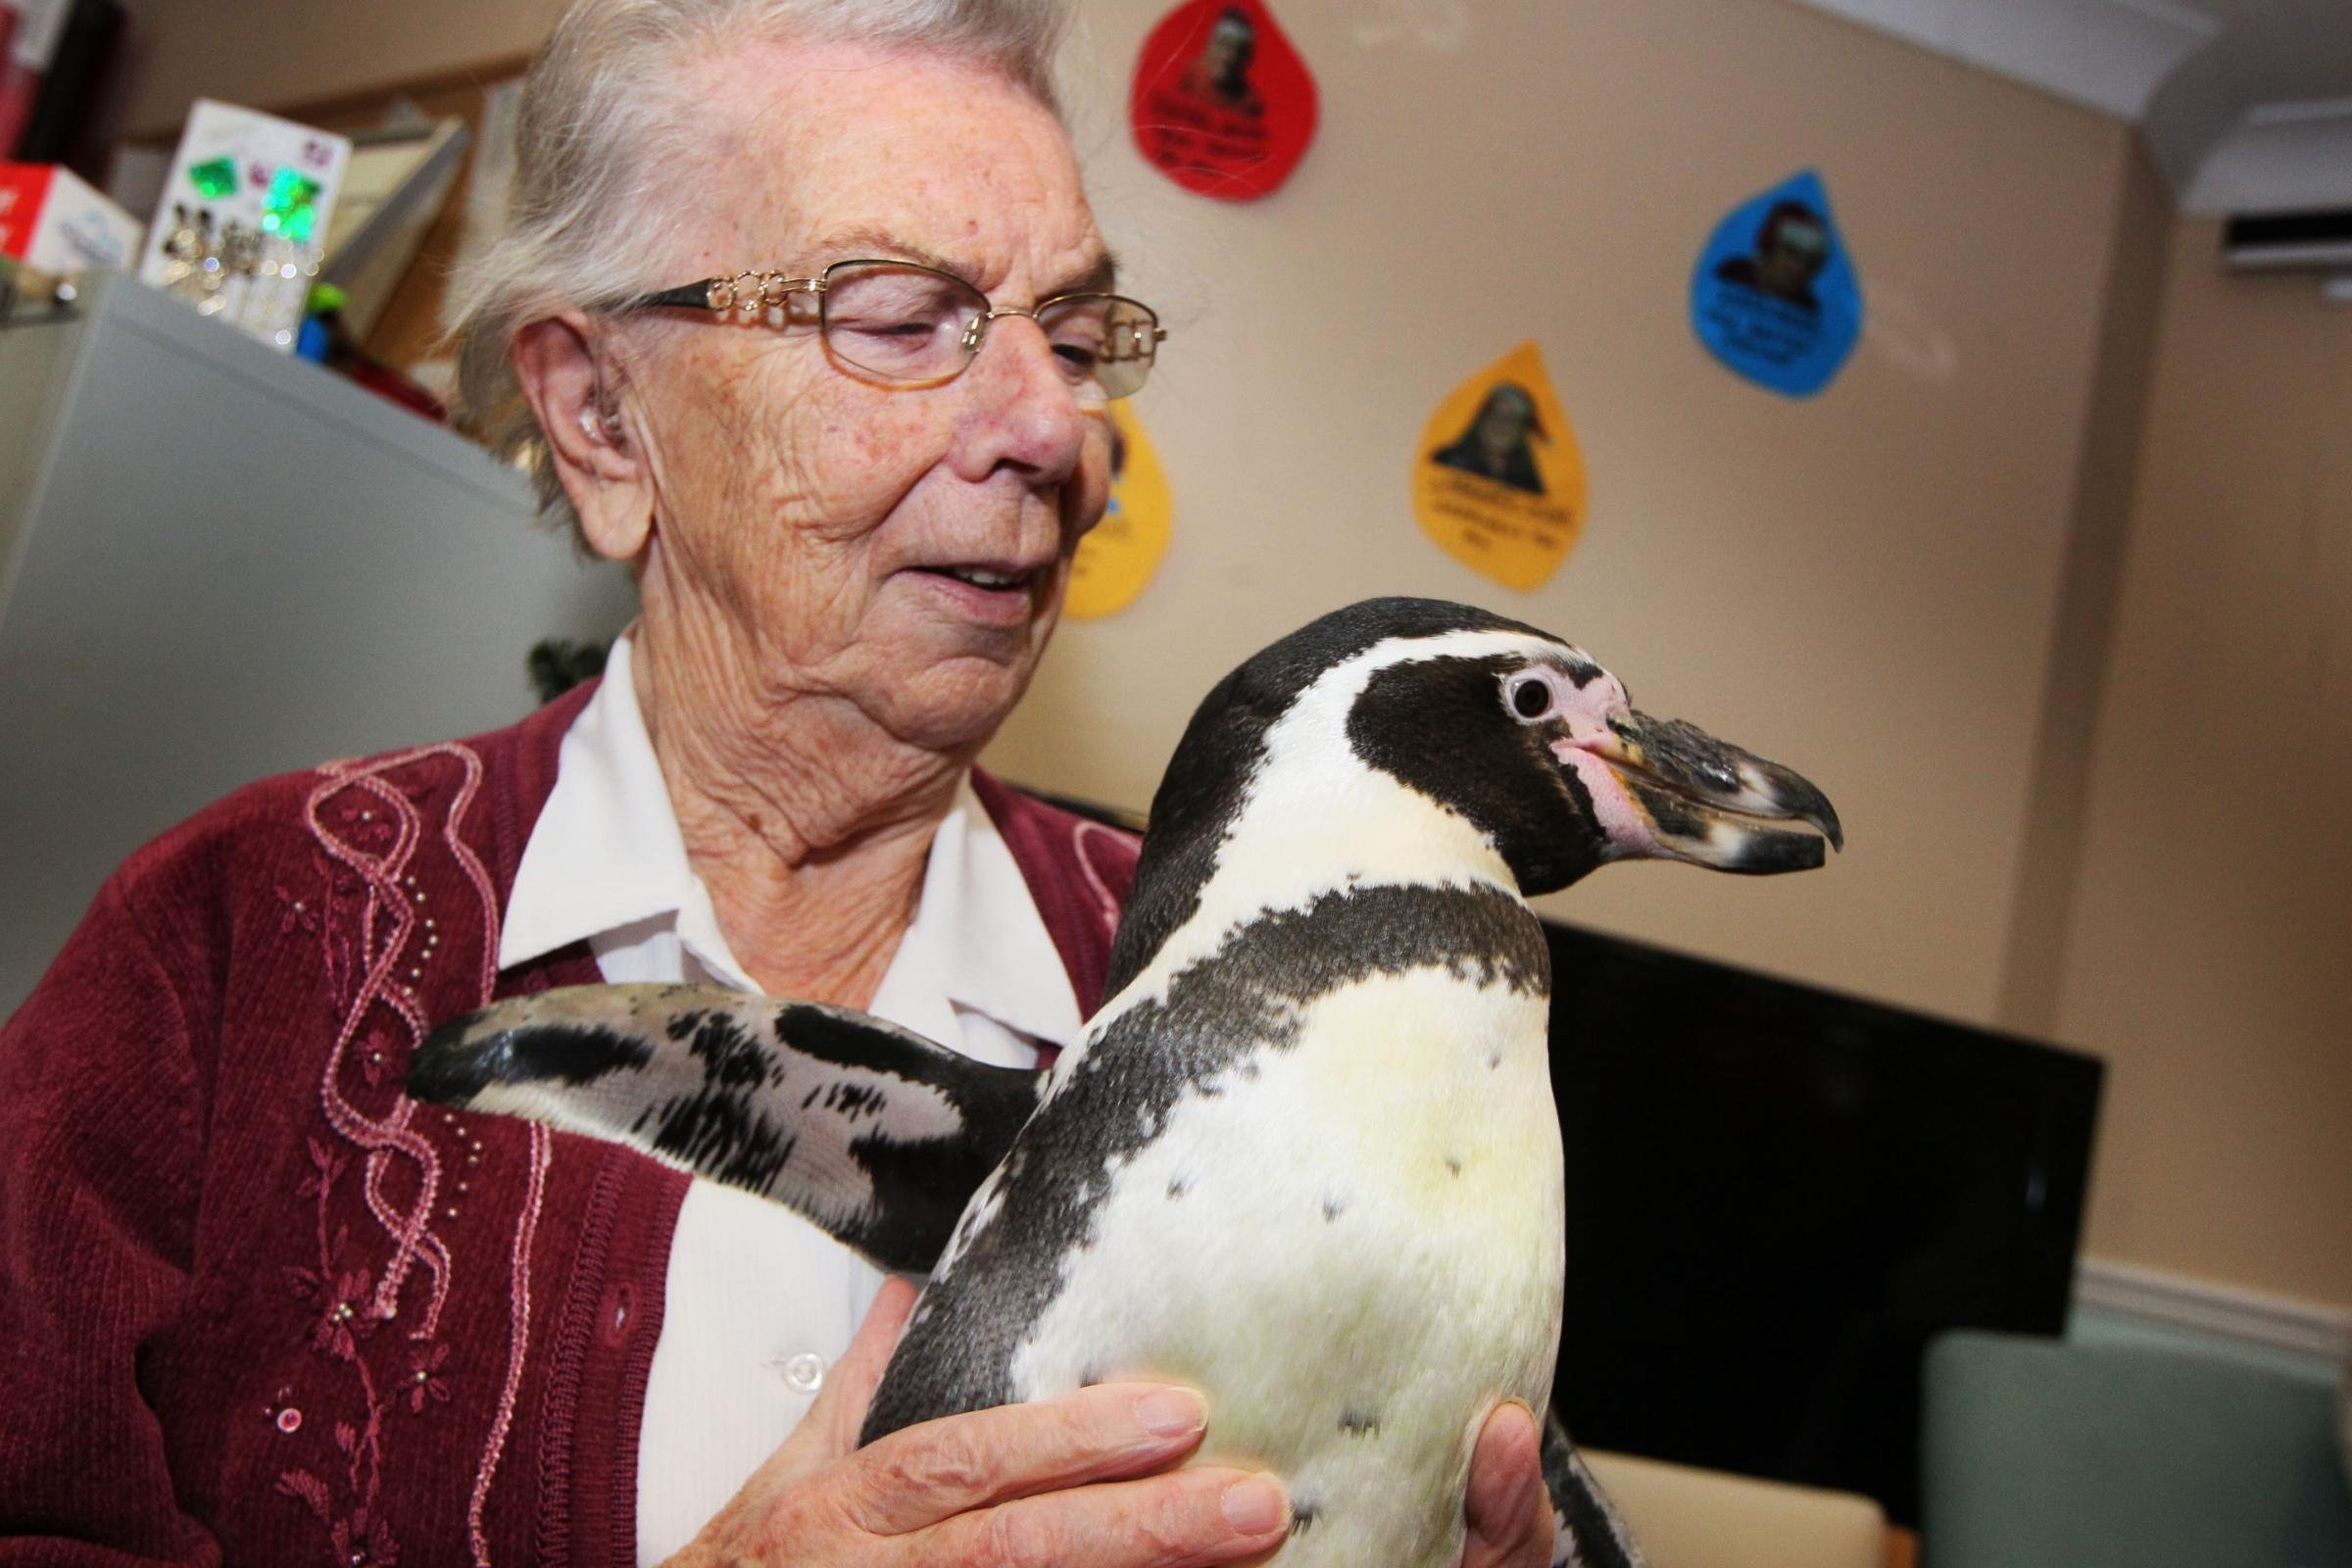 Pringle and Charlie the penguins visit a care home to cuddle elderly residents